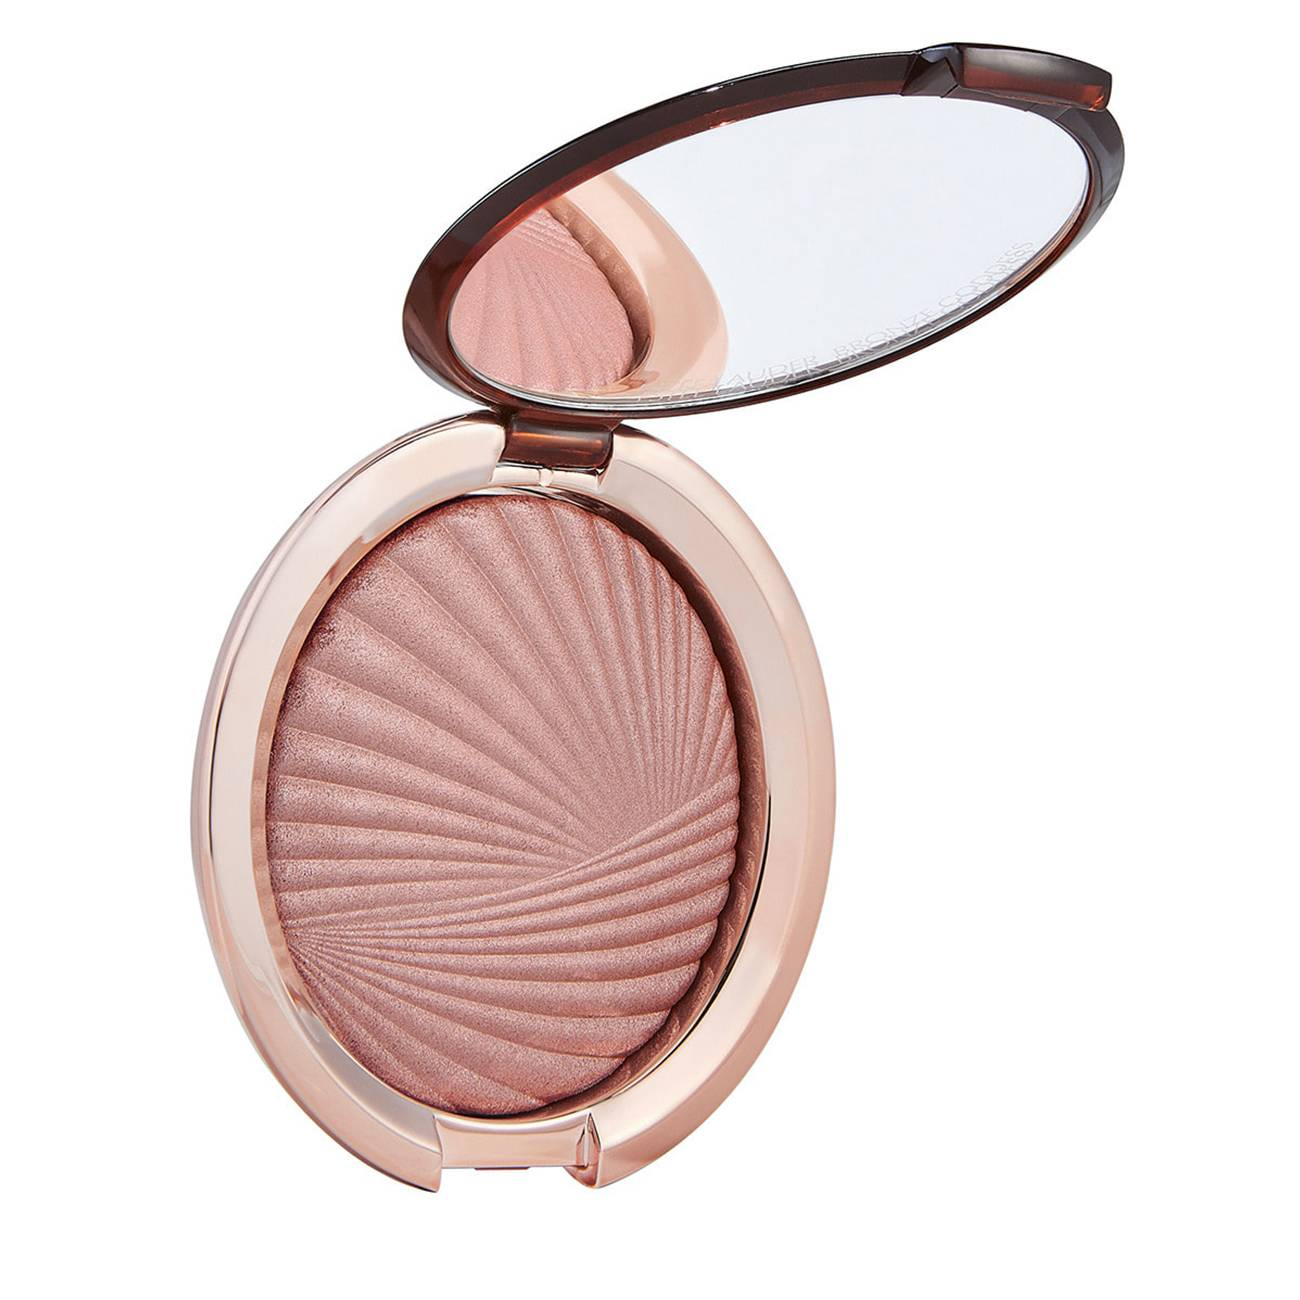 Bronze Goddess Highlighting Powder Gelee 03 9gr Estée Lauder imagine 2021 bestvalue.eu